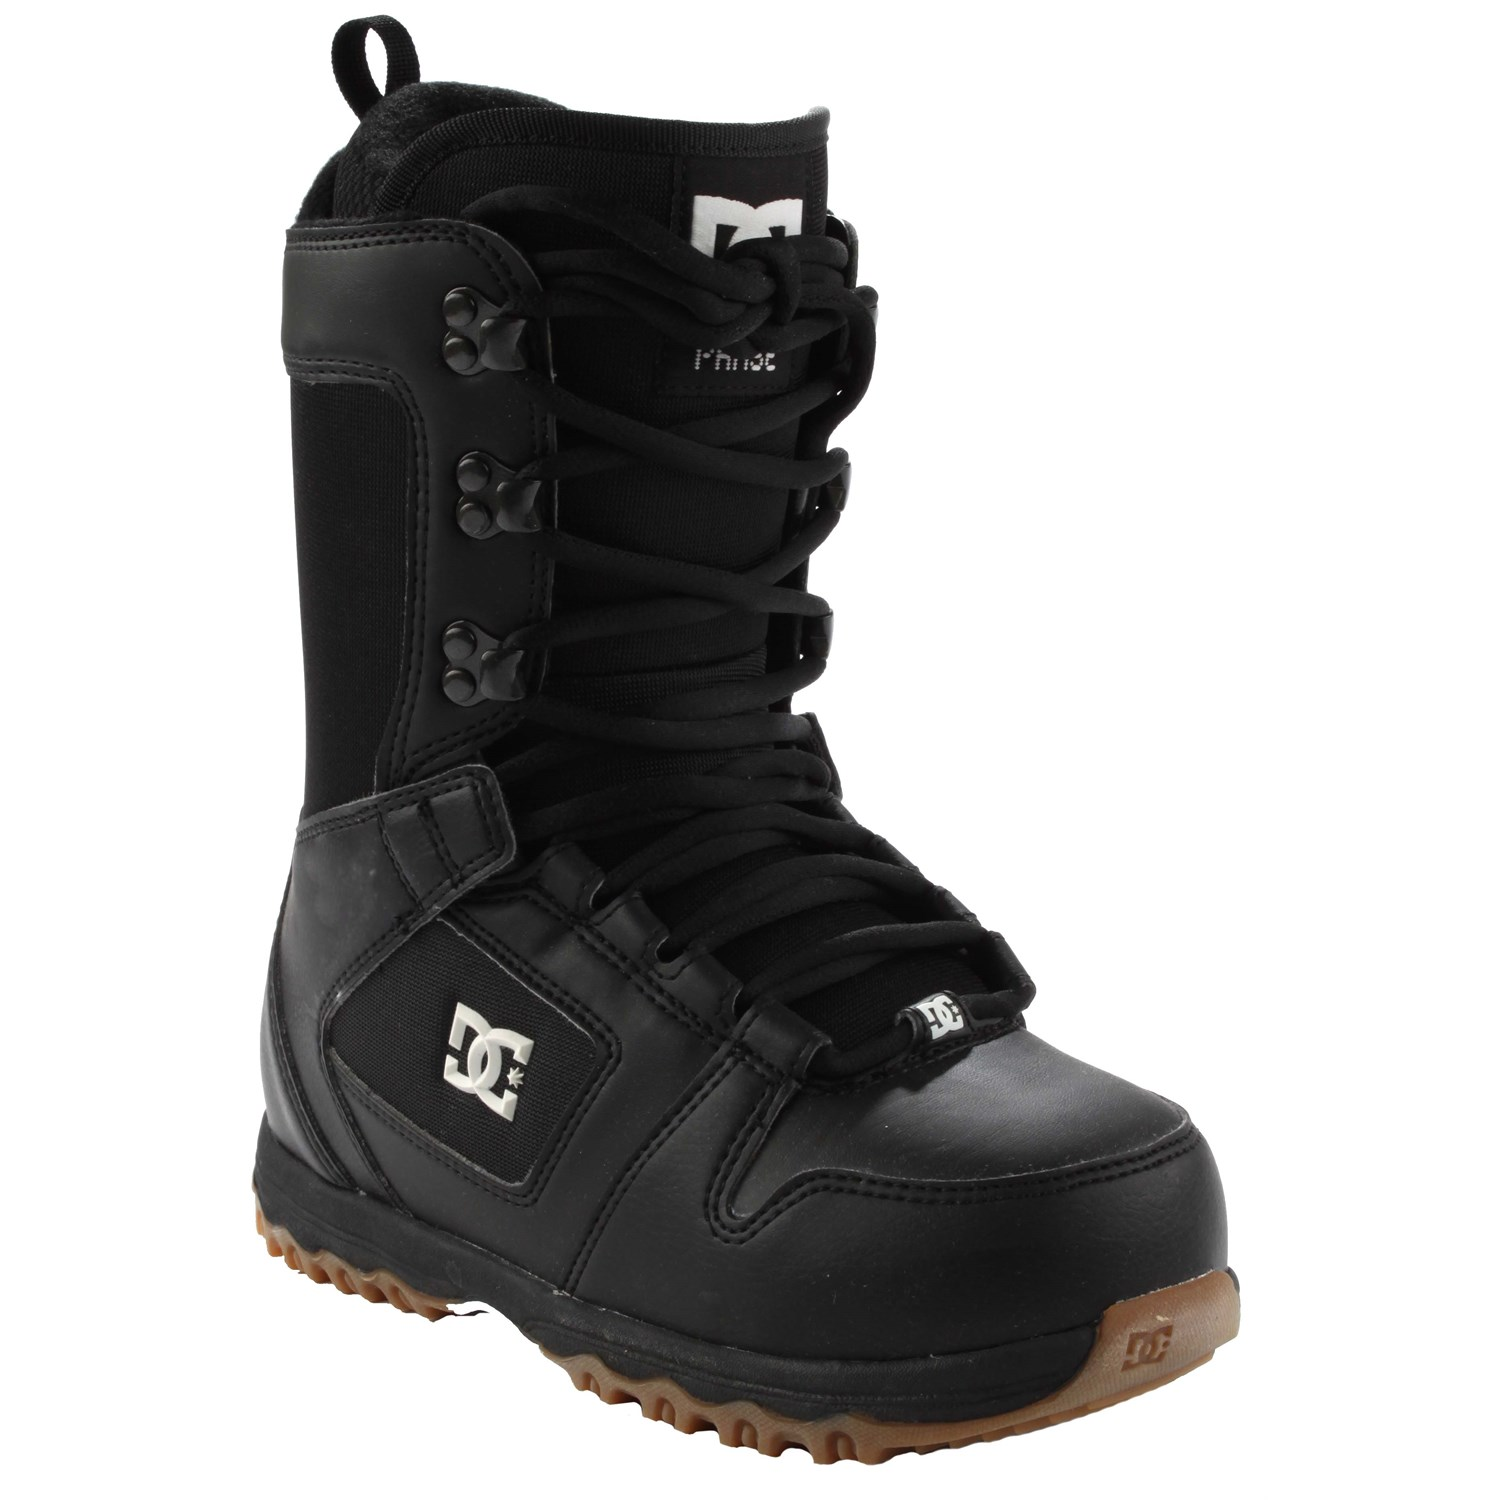 book of dc snowboard boots womens in australia by